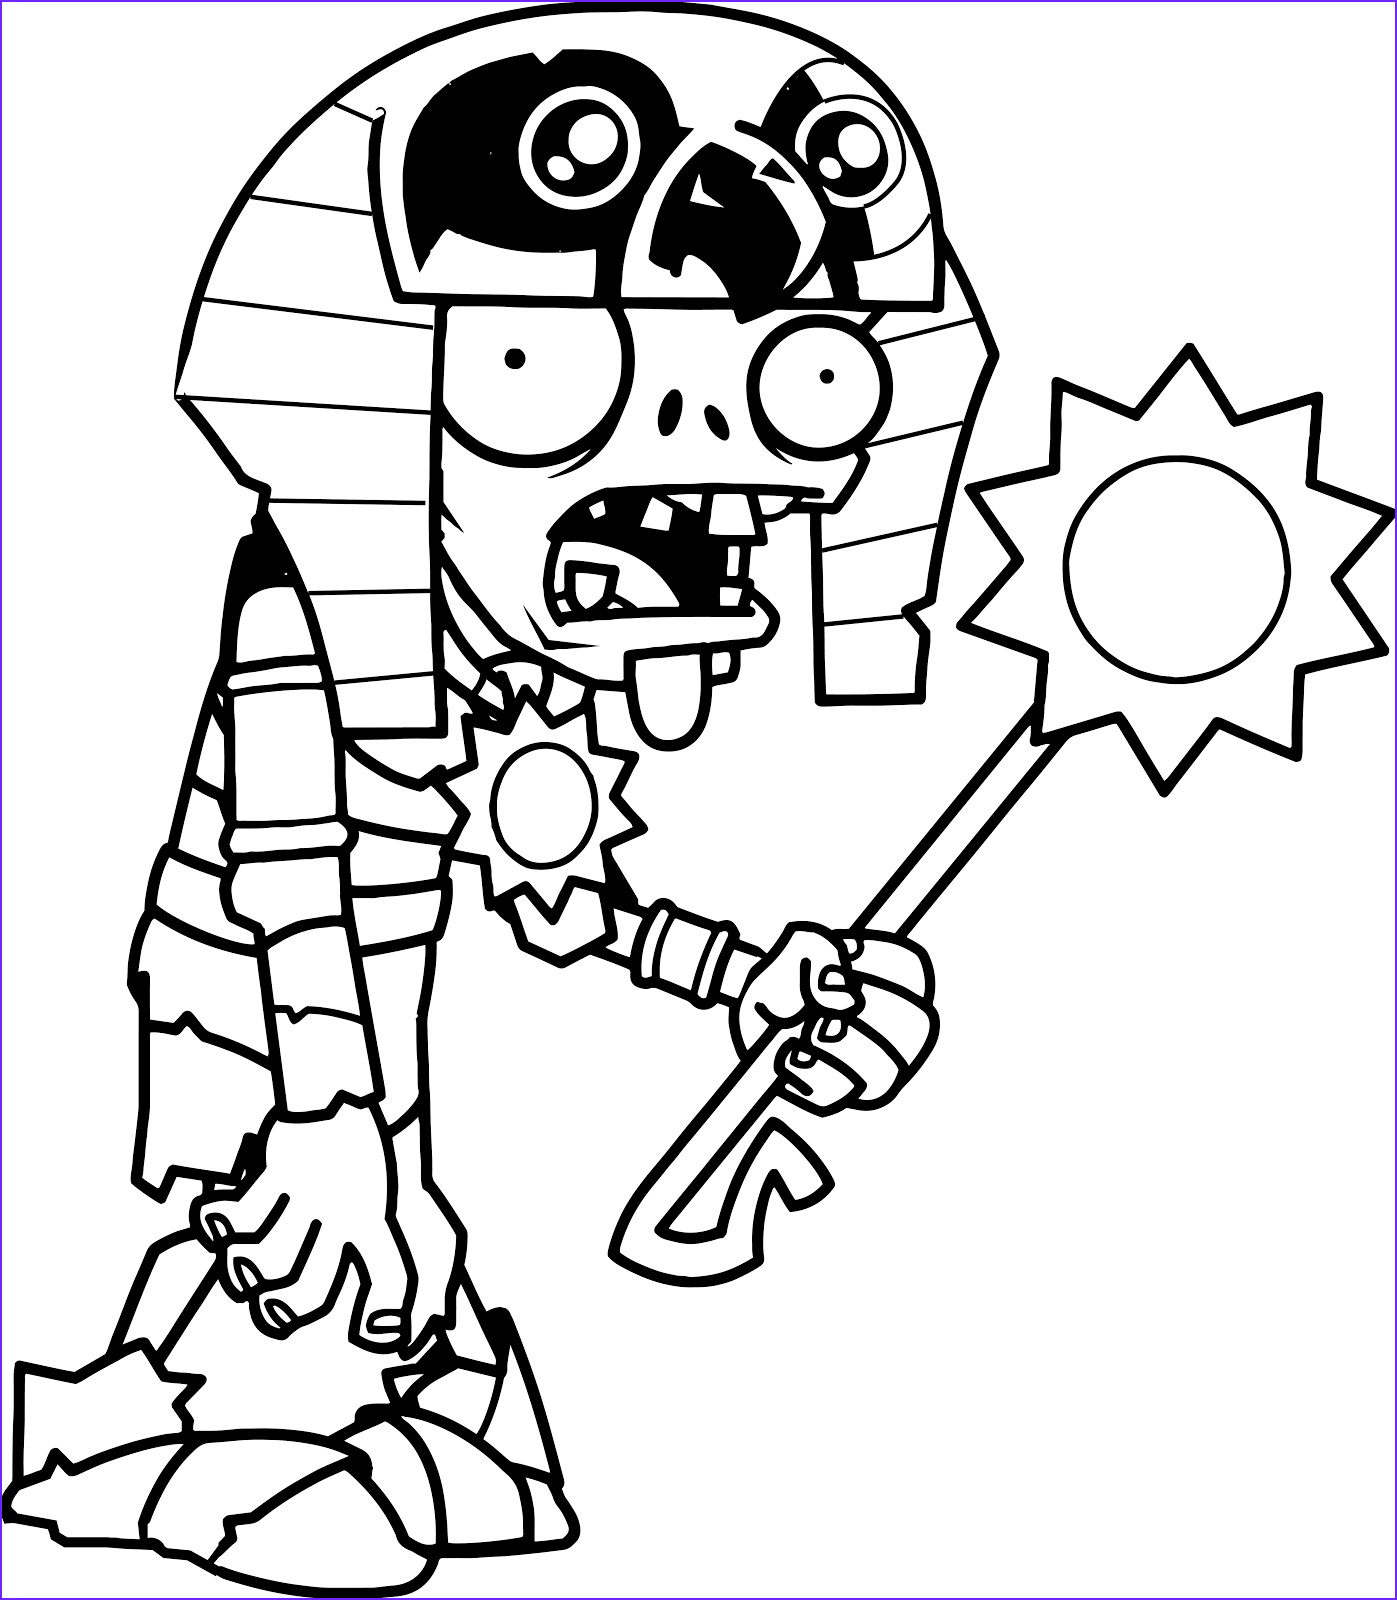 Zombie Coloring Book Elegant Photos original Coloring Pages Plants Vs Zombies 2 Egyptian